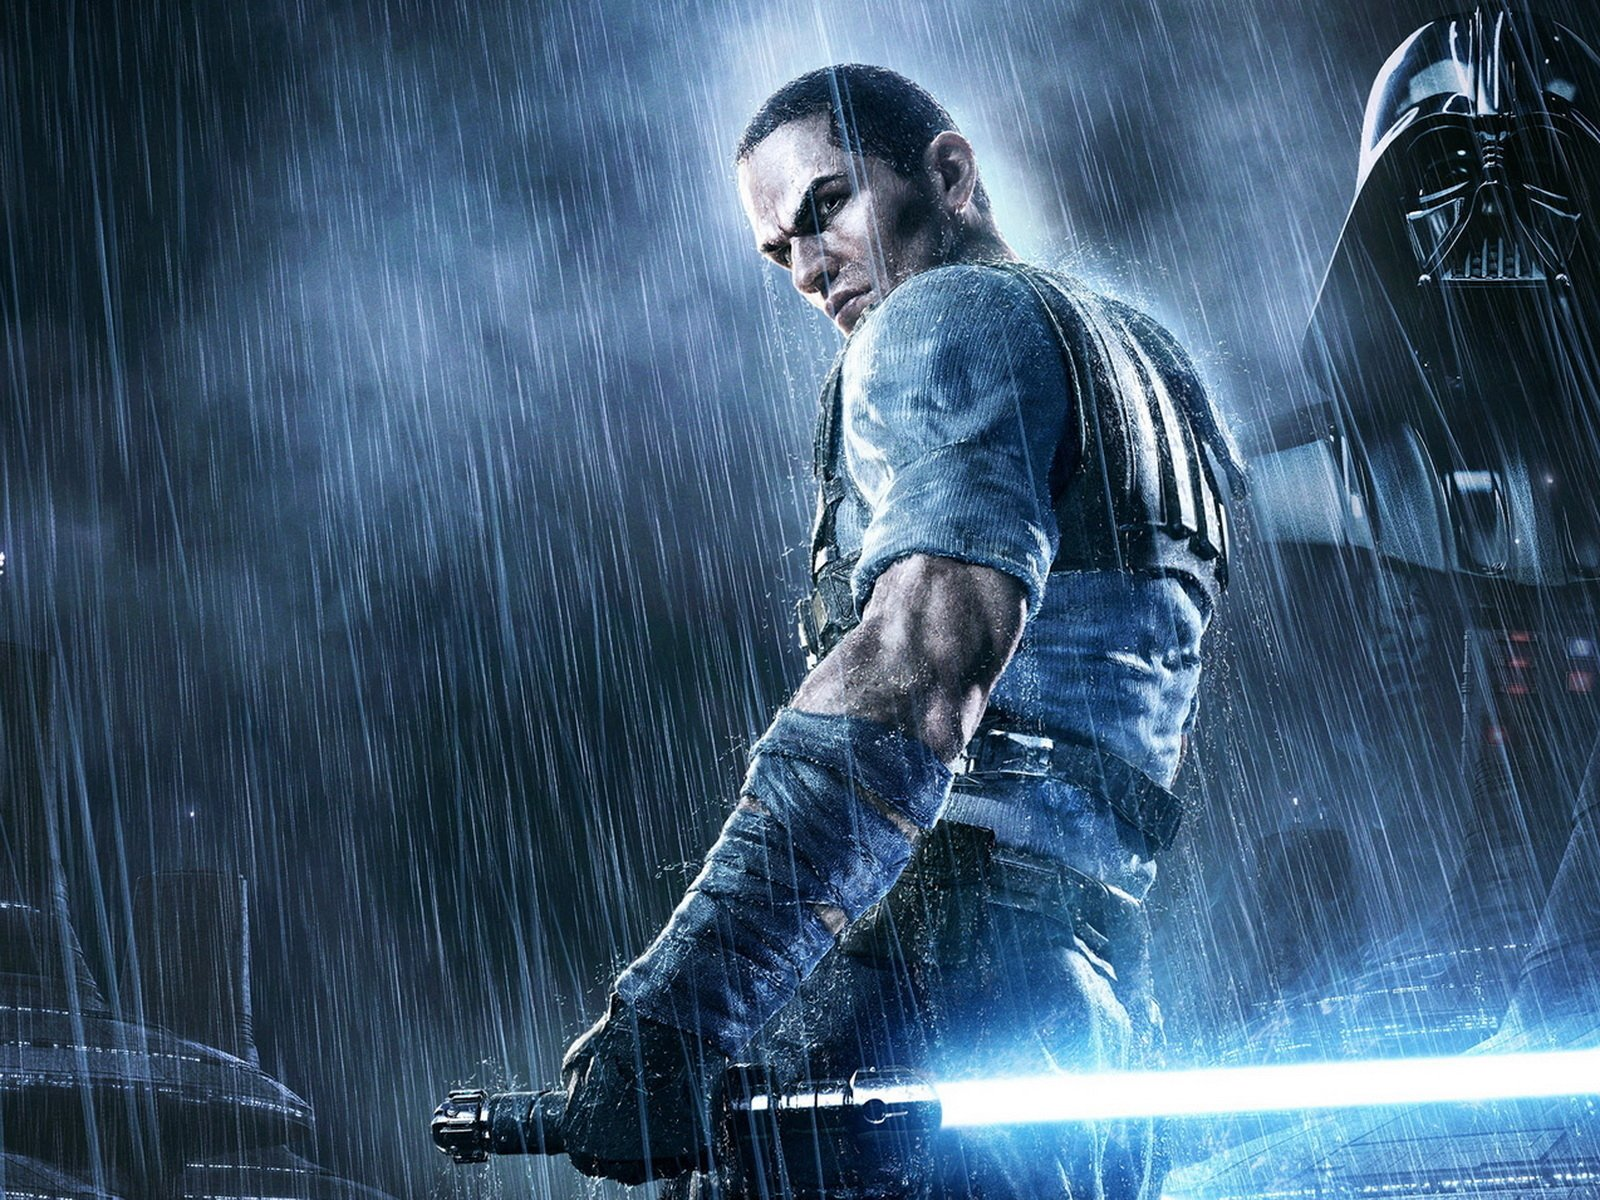 Video Game - Star Wars: The Force Unleashed  Wallpaper